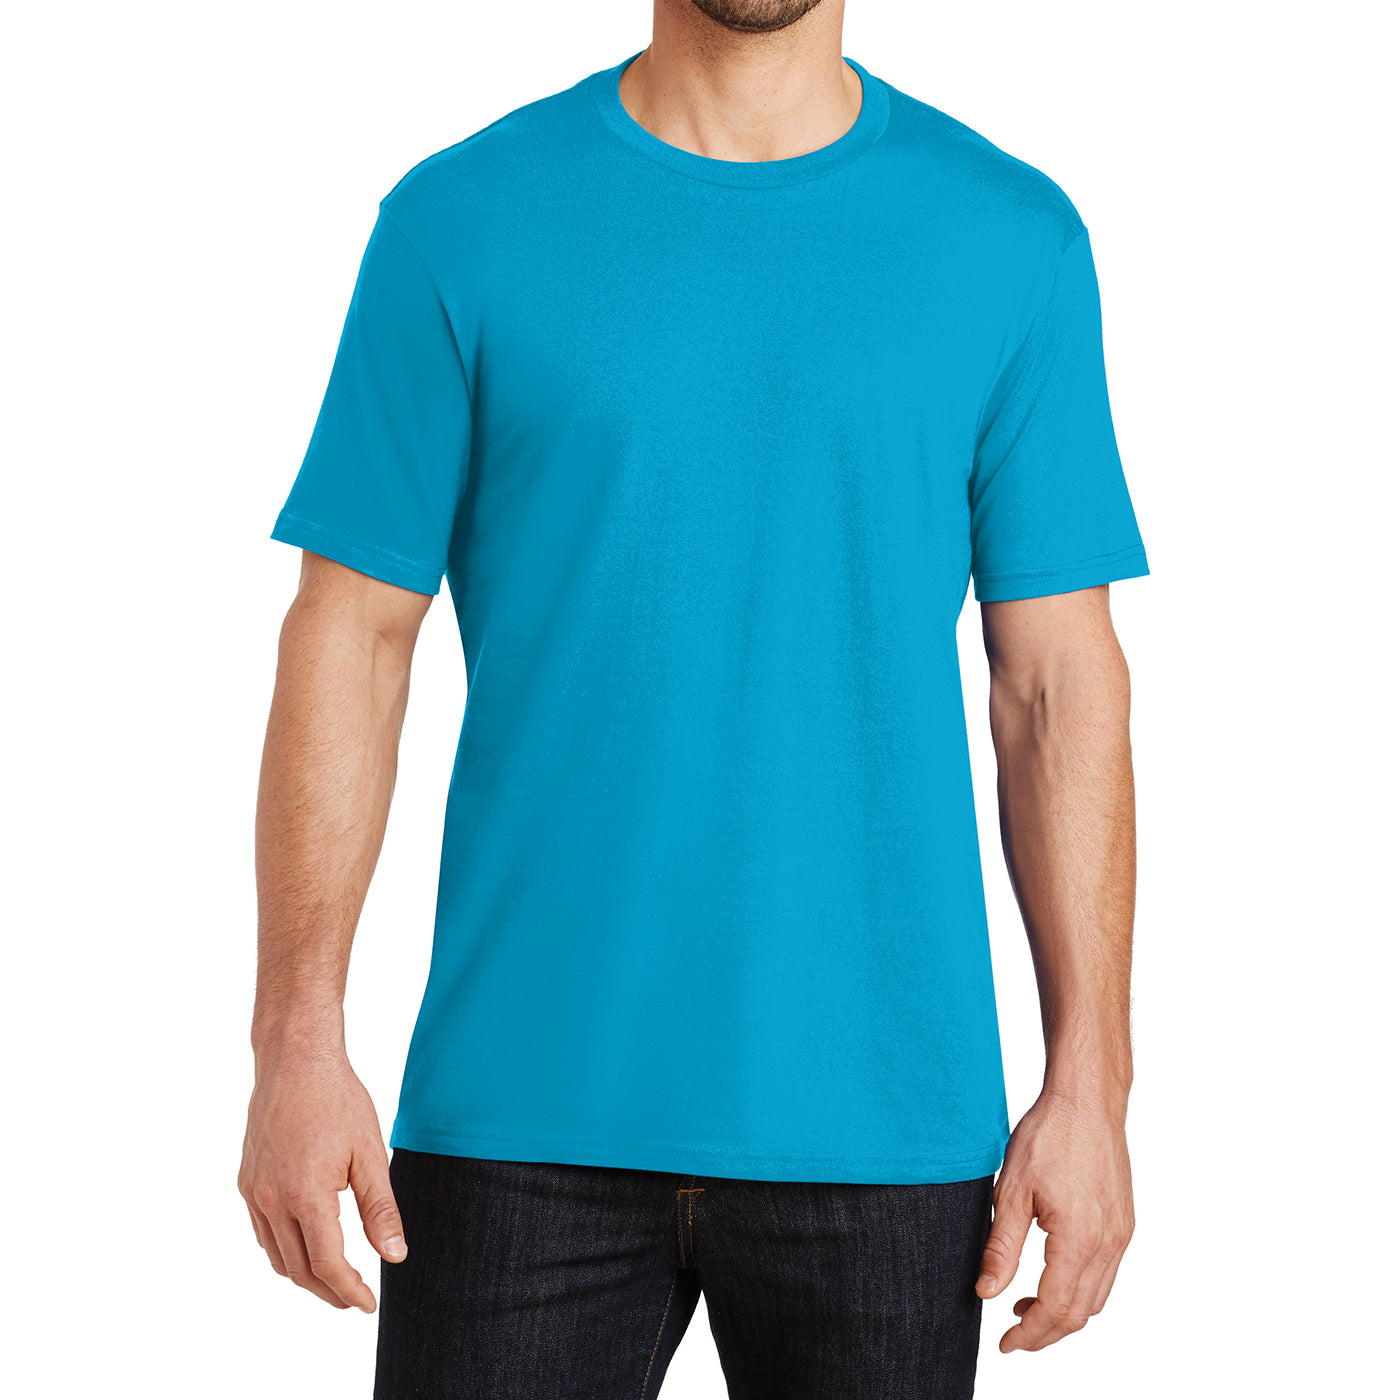 Mens Perfect Weight Crew Tee - Bright Turquoise - Front